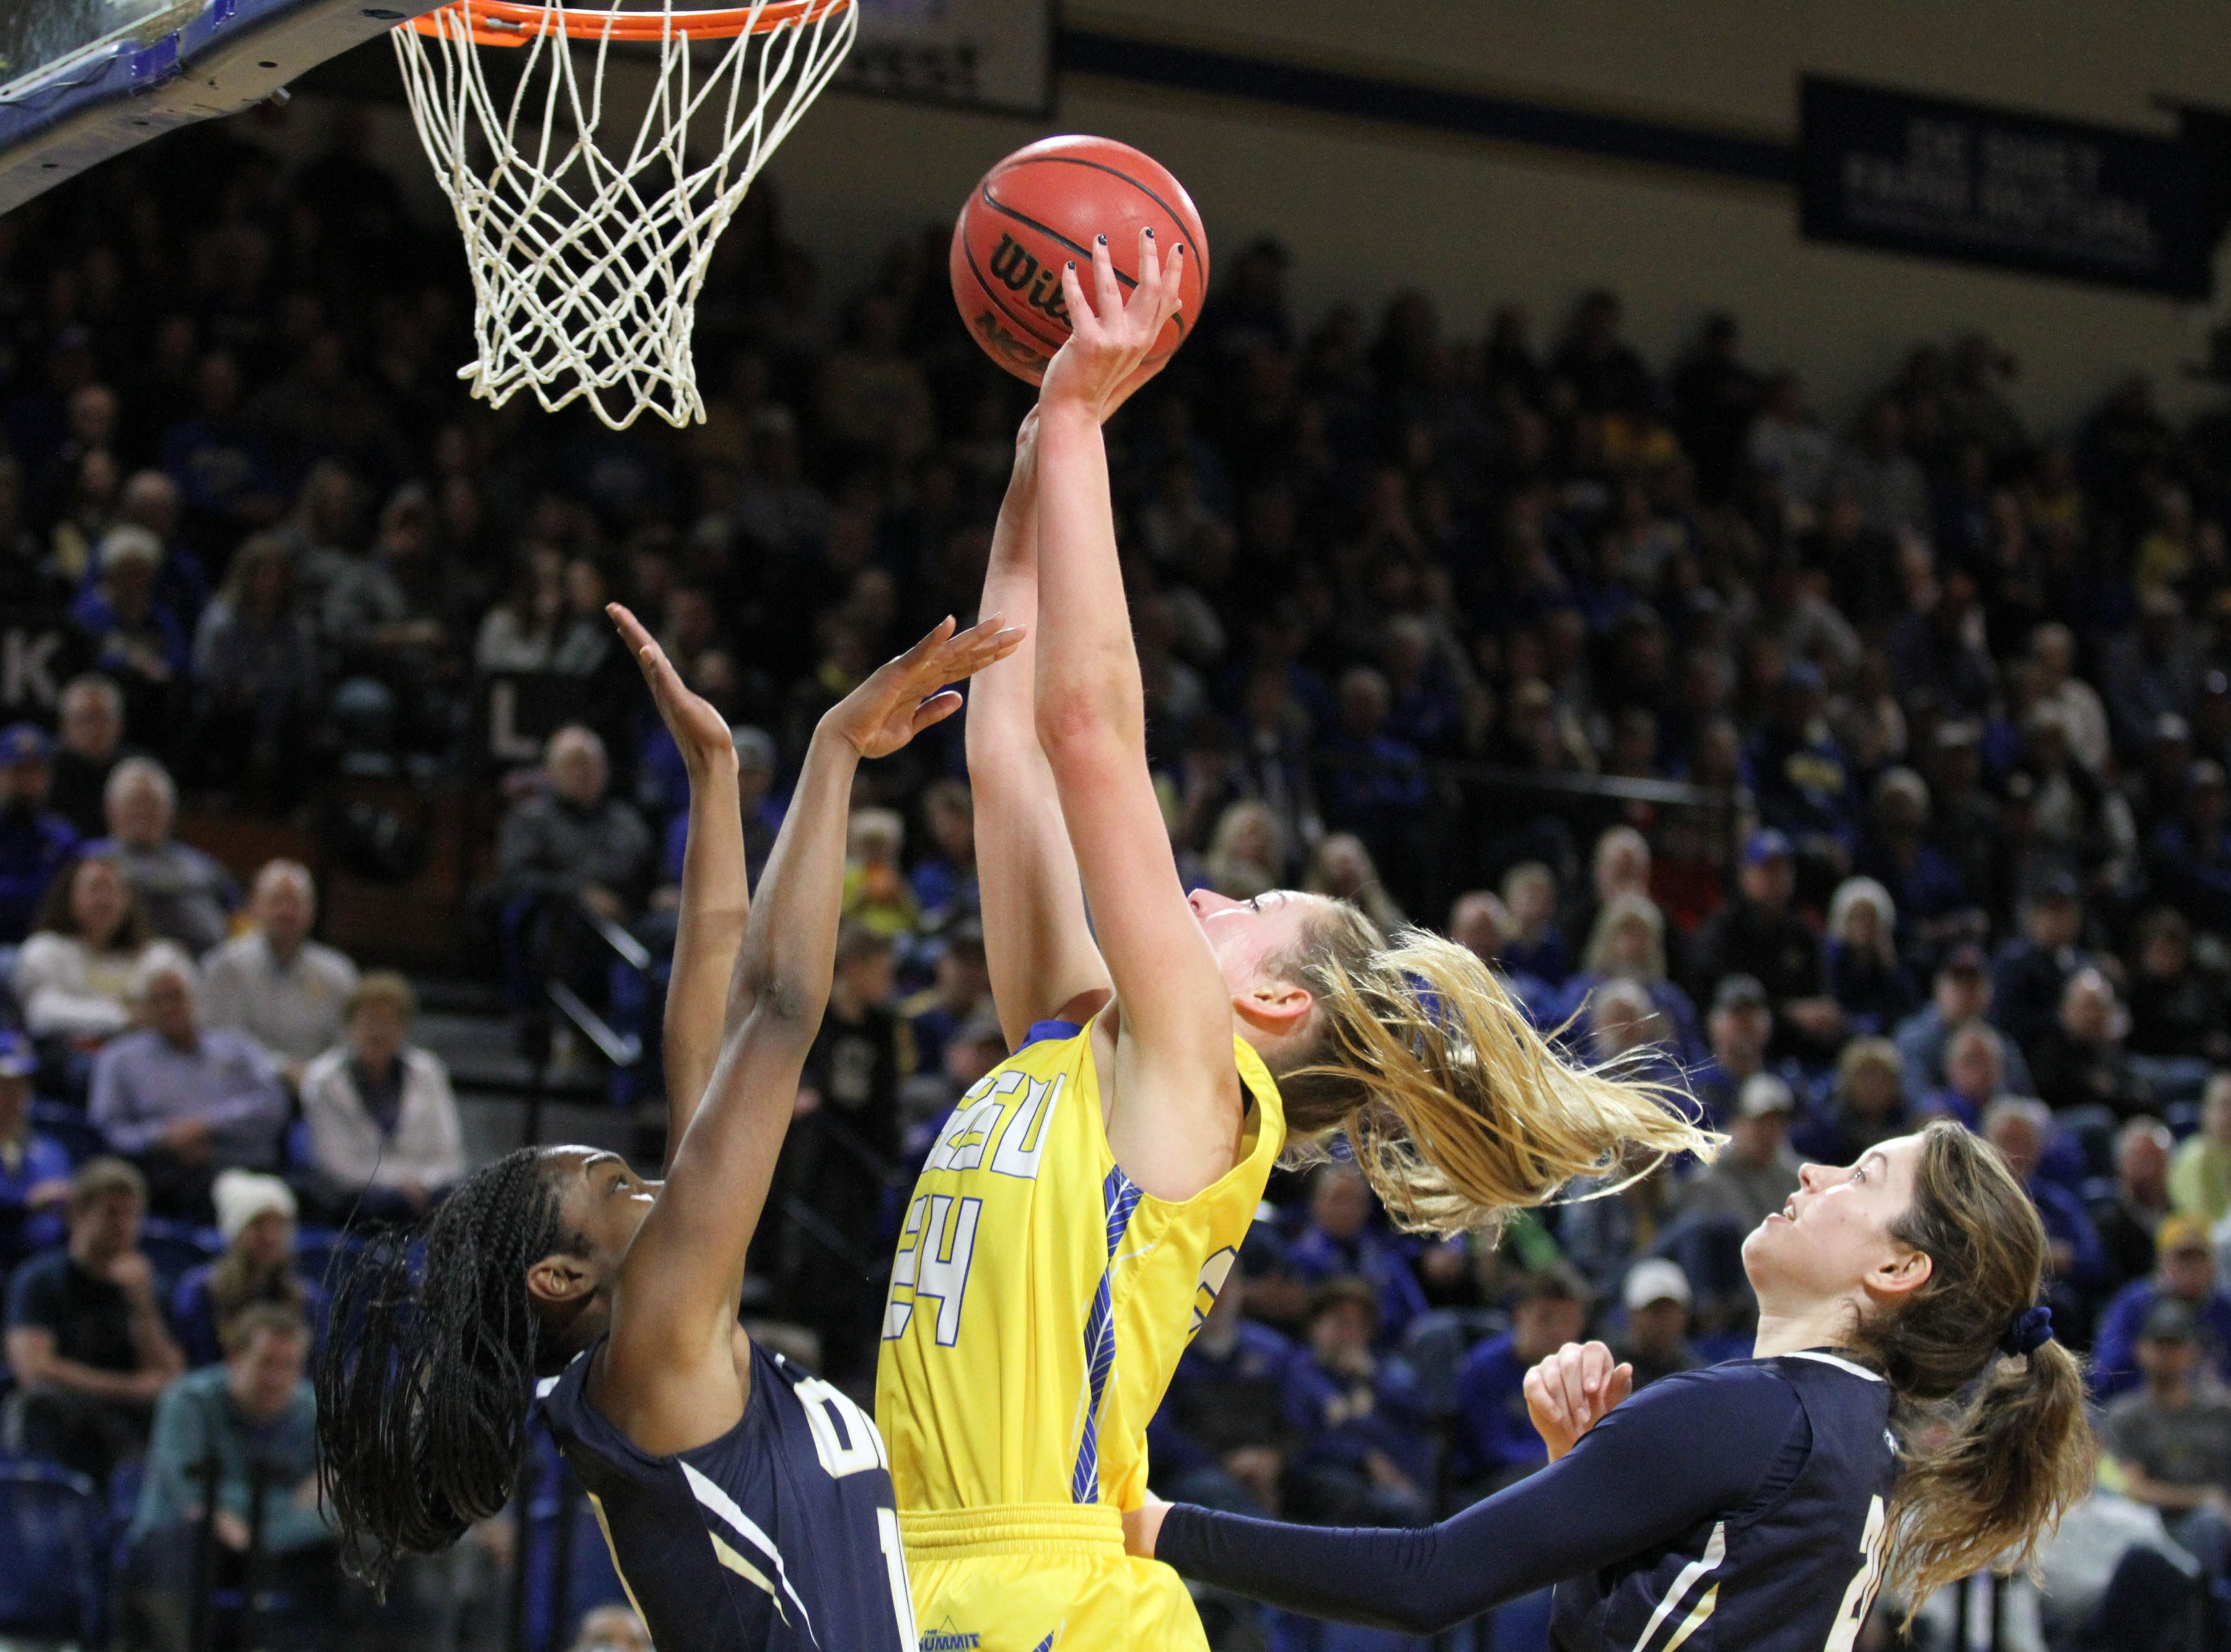 South Dakota State's Tagyn Larson (24) scores in the paint over Oral Roberts' Jasmyne May during the second quarter of the Jackrabbits' matchup against the Golden Eagles Saturday afternoon at Frost Arena in Brookings.